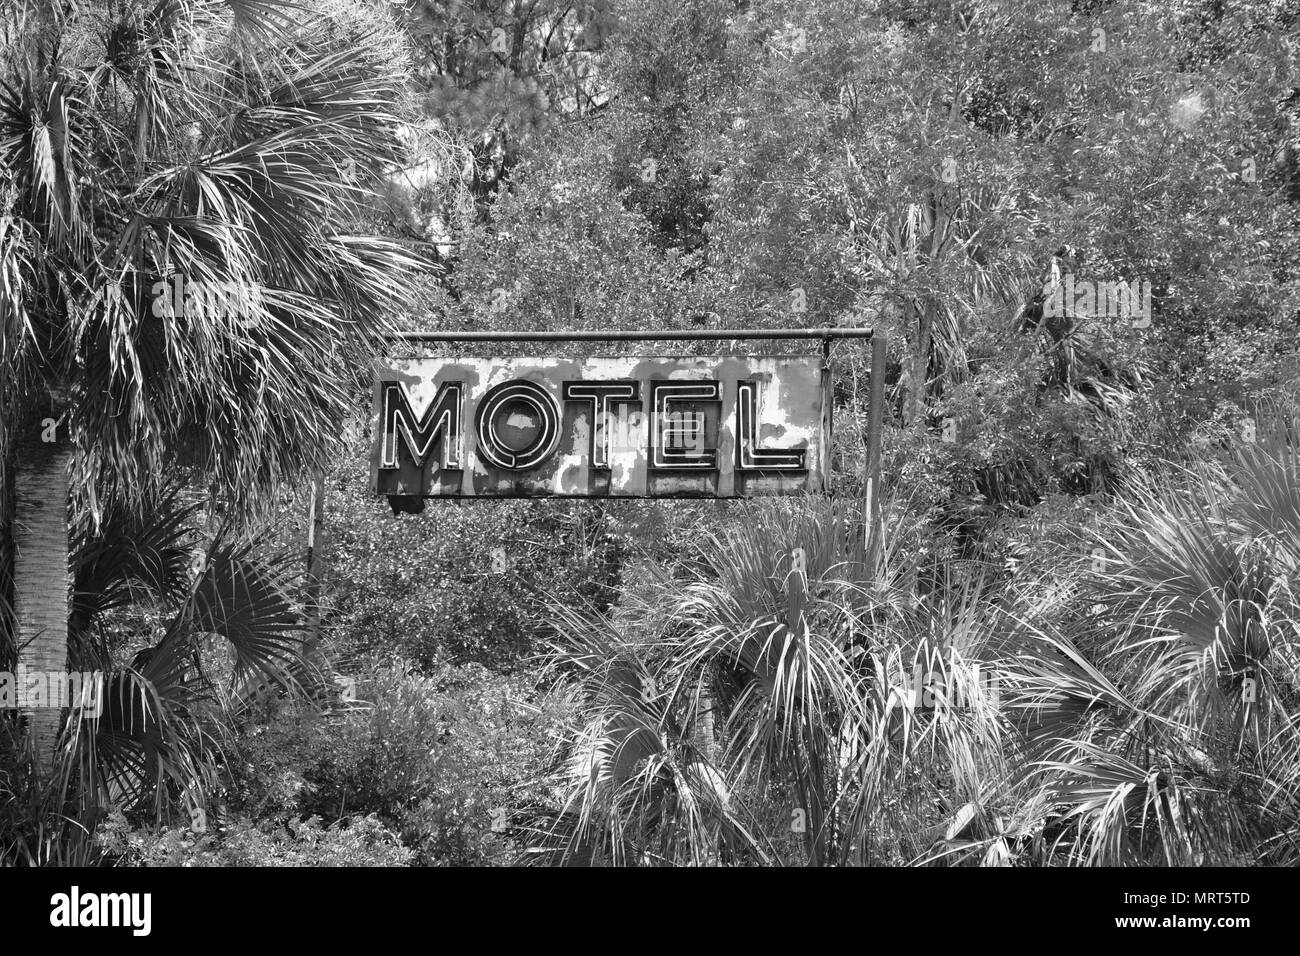 Old Signksblack and white - Stock Image